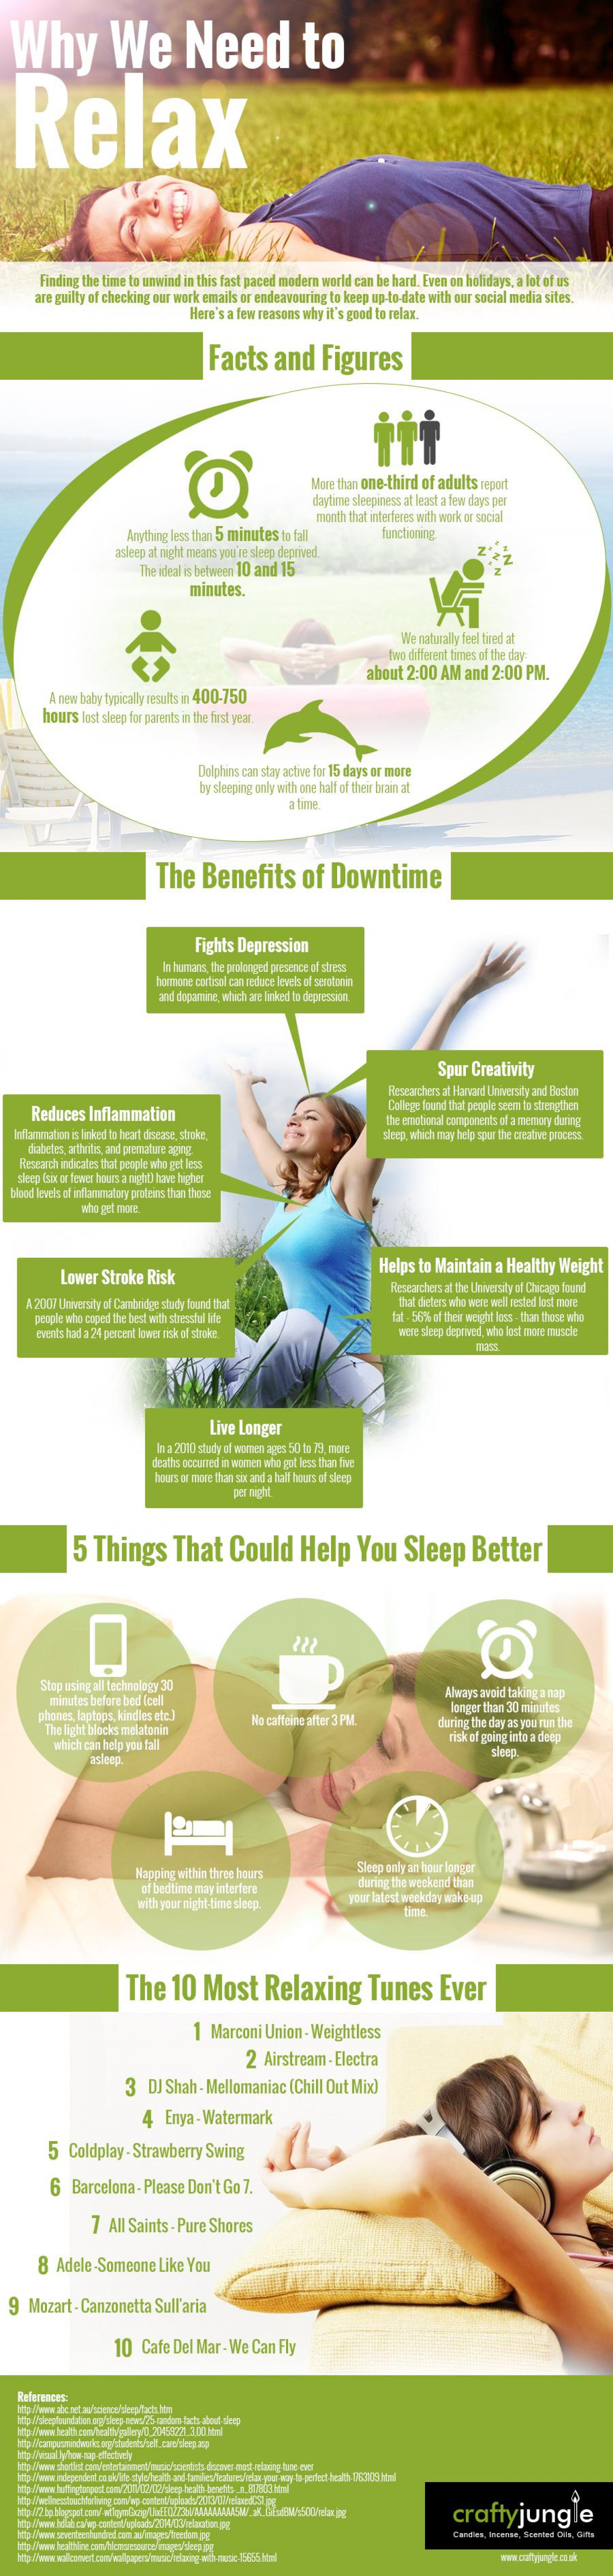 National Relaxation Day August 15th -Infographic  Infographic